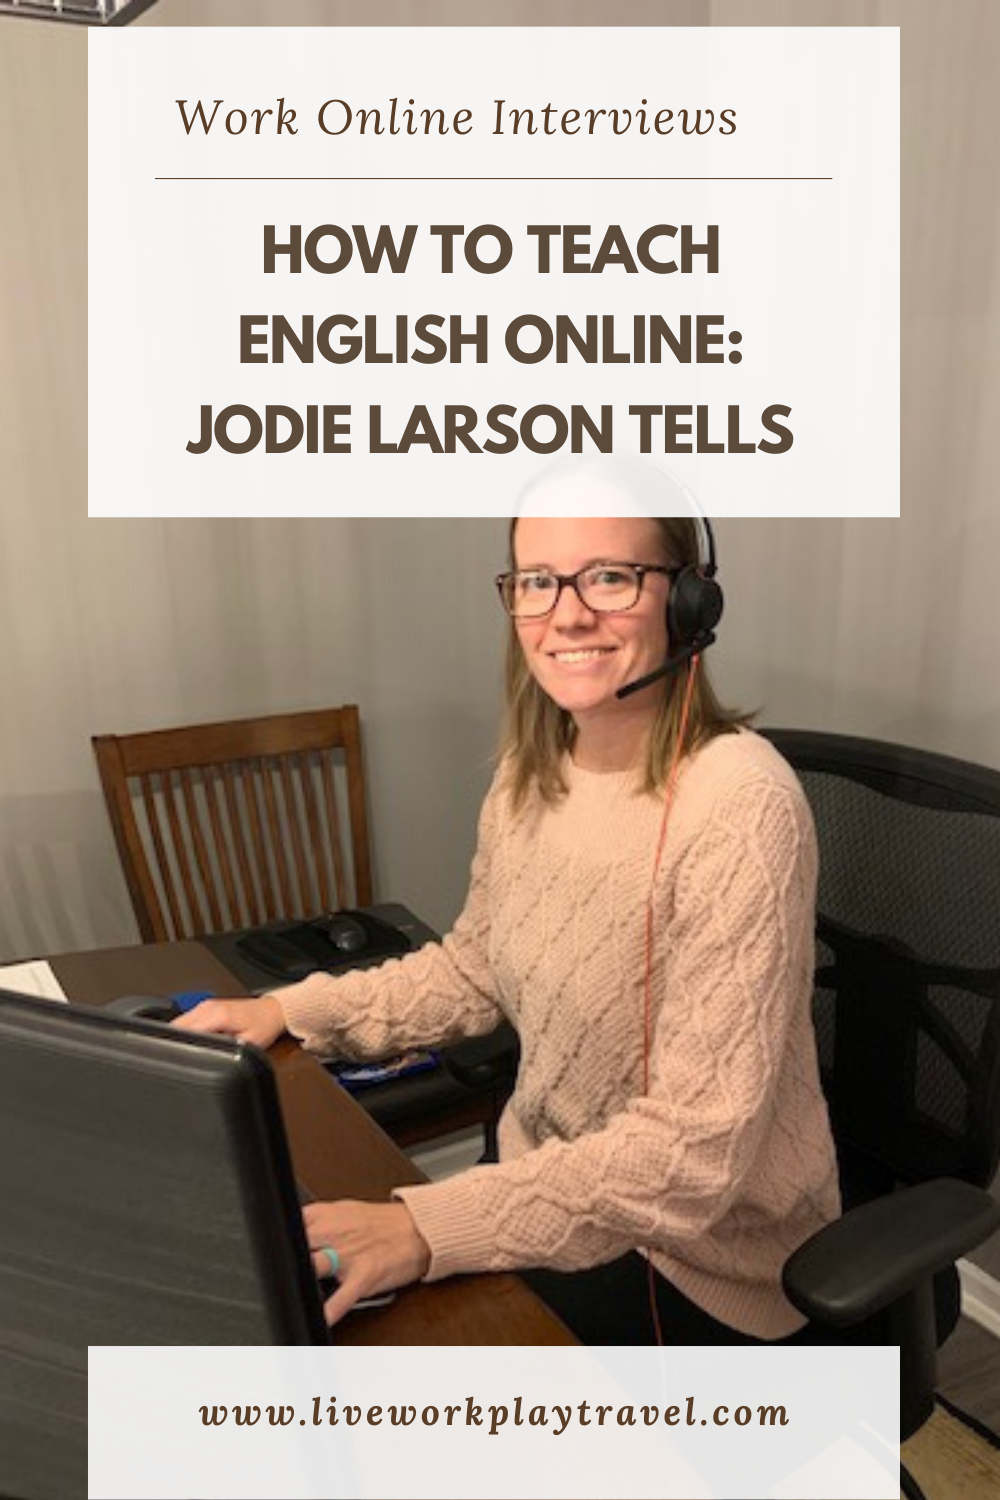 Jodie Larson teaching English online. Sitting at her desk teaching.